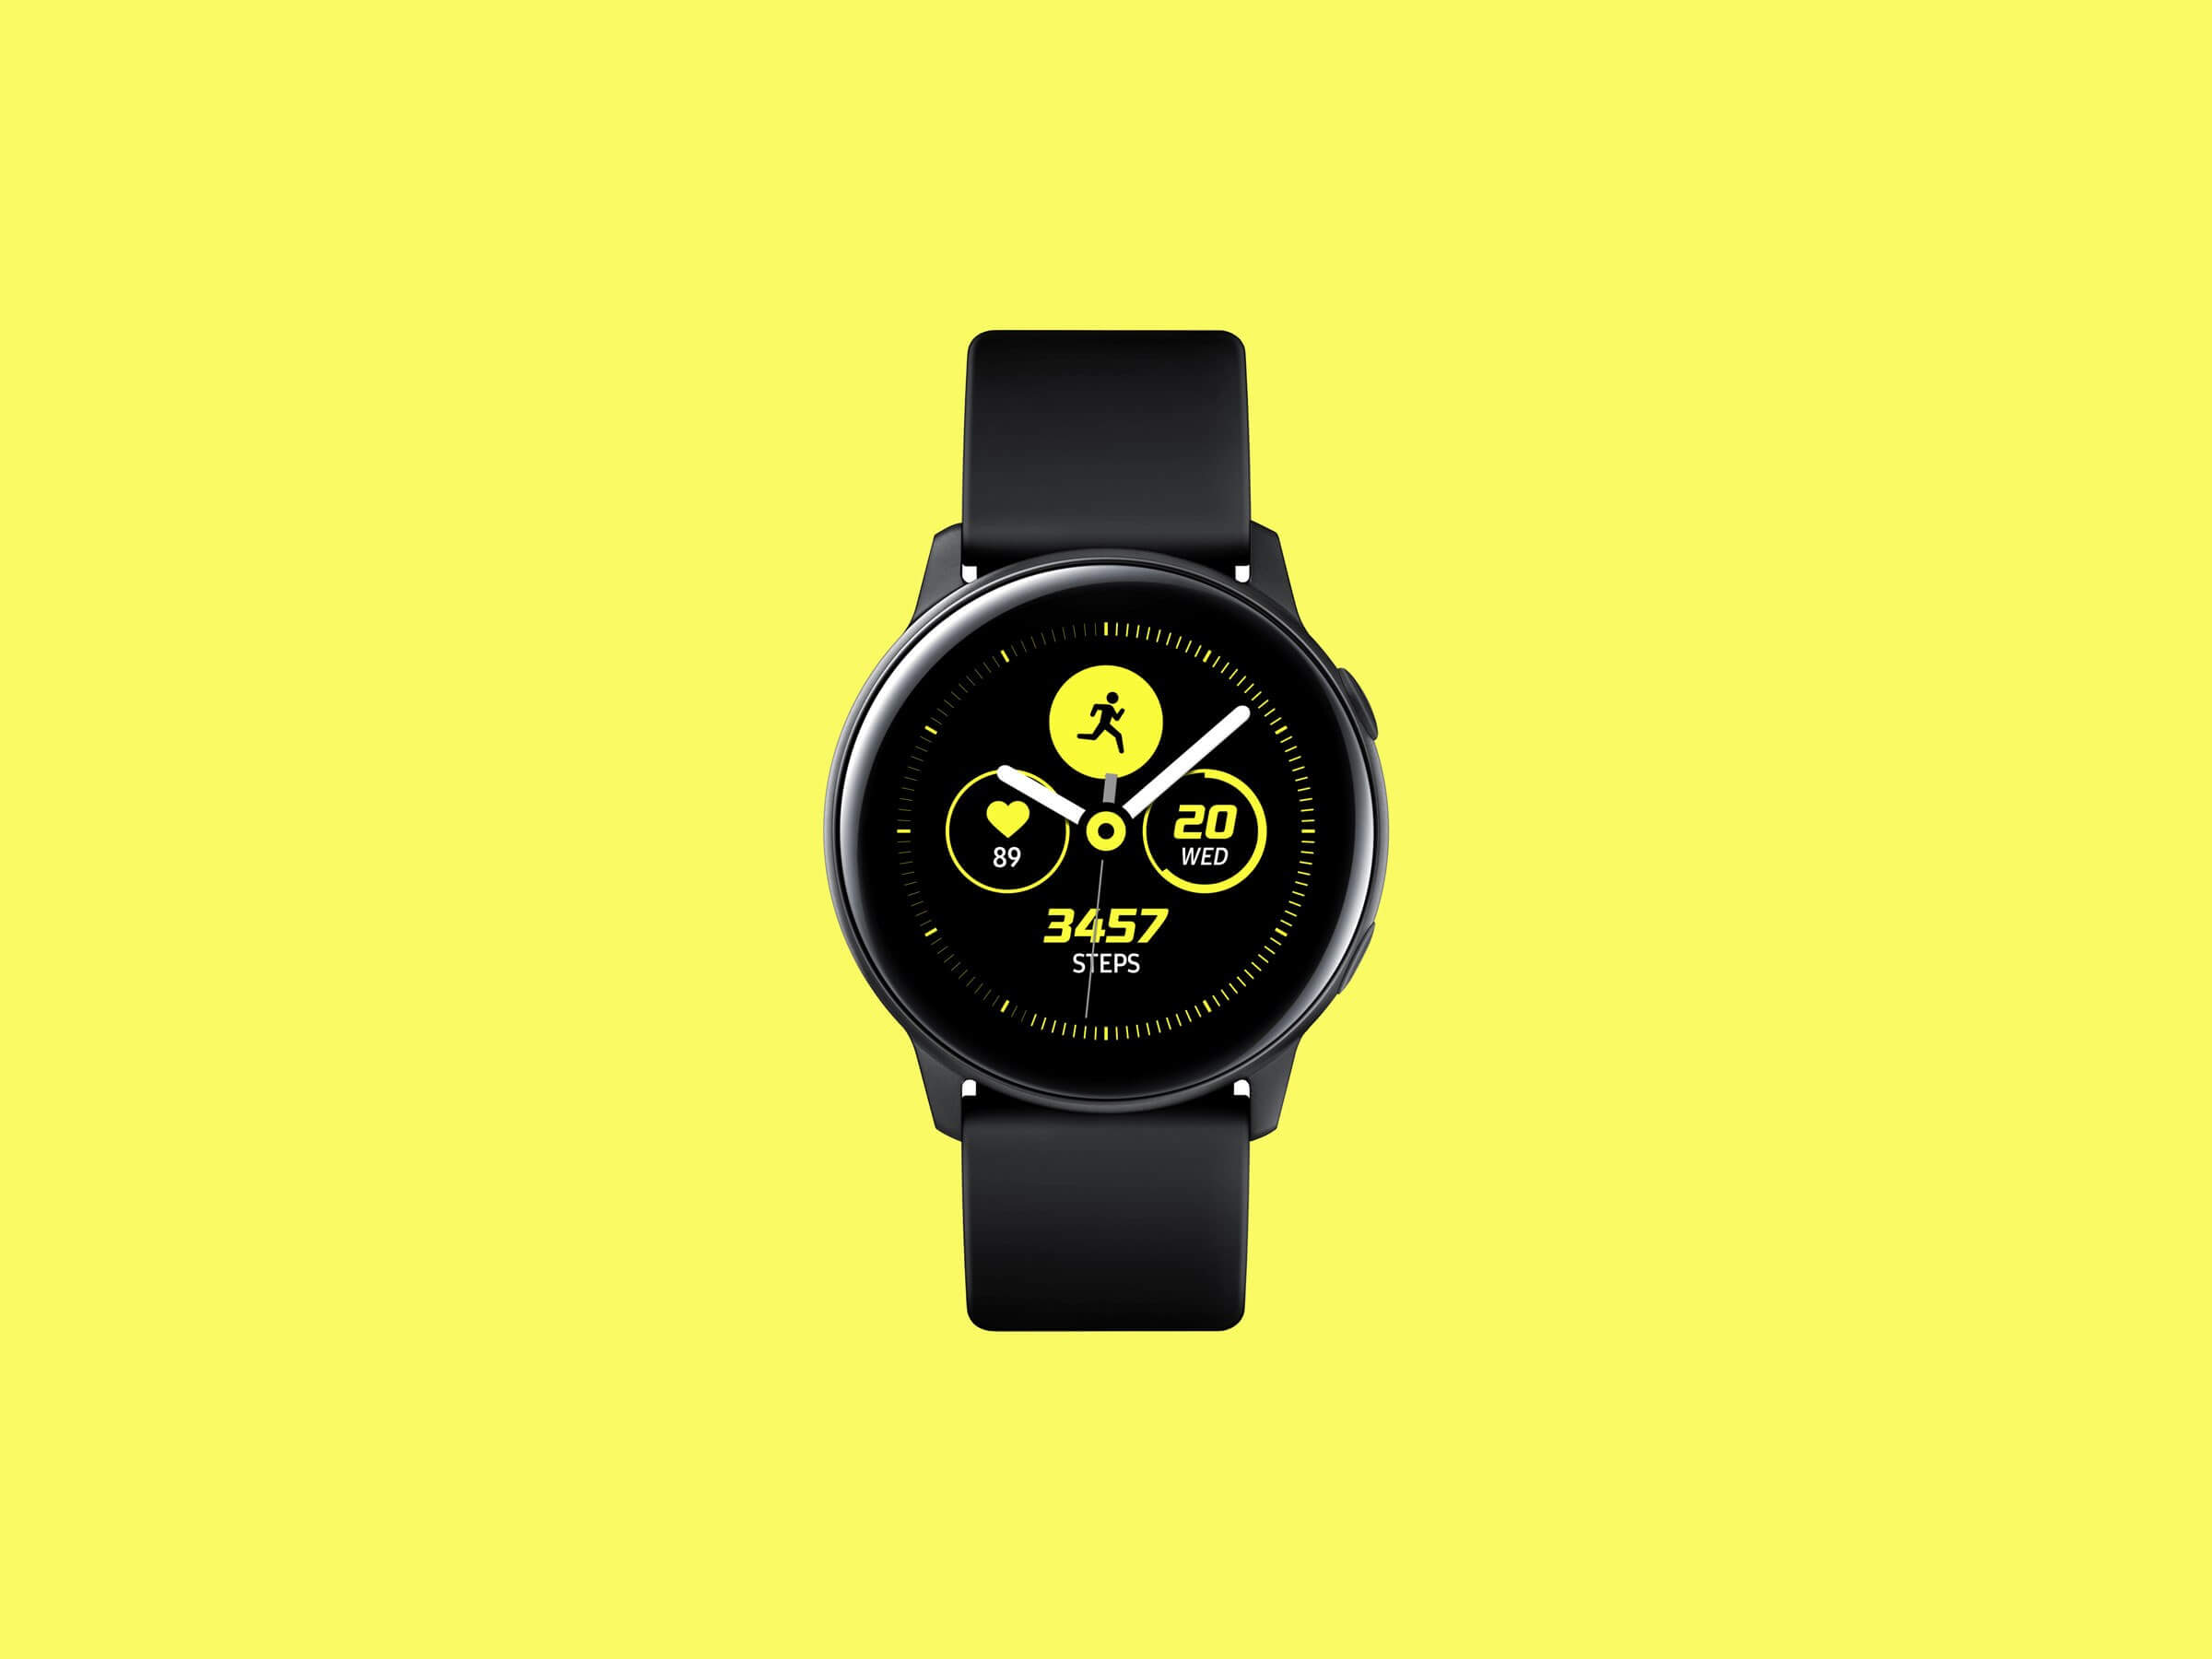 samsung galaxy watch active latest smartwatch